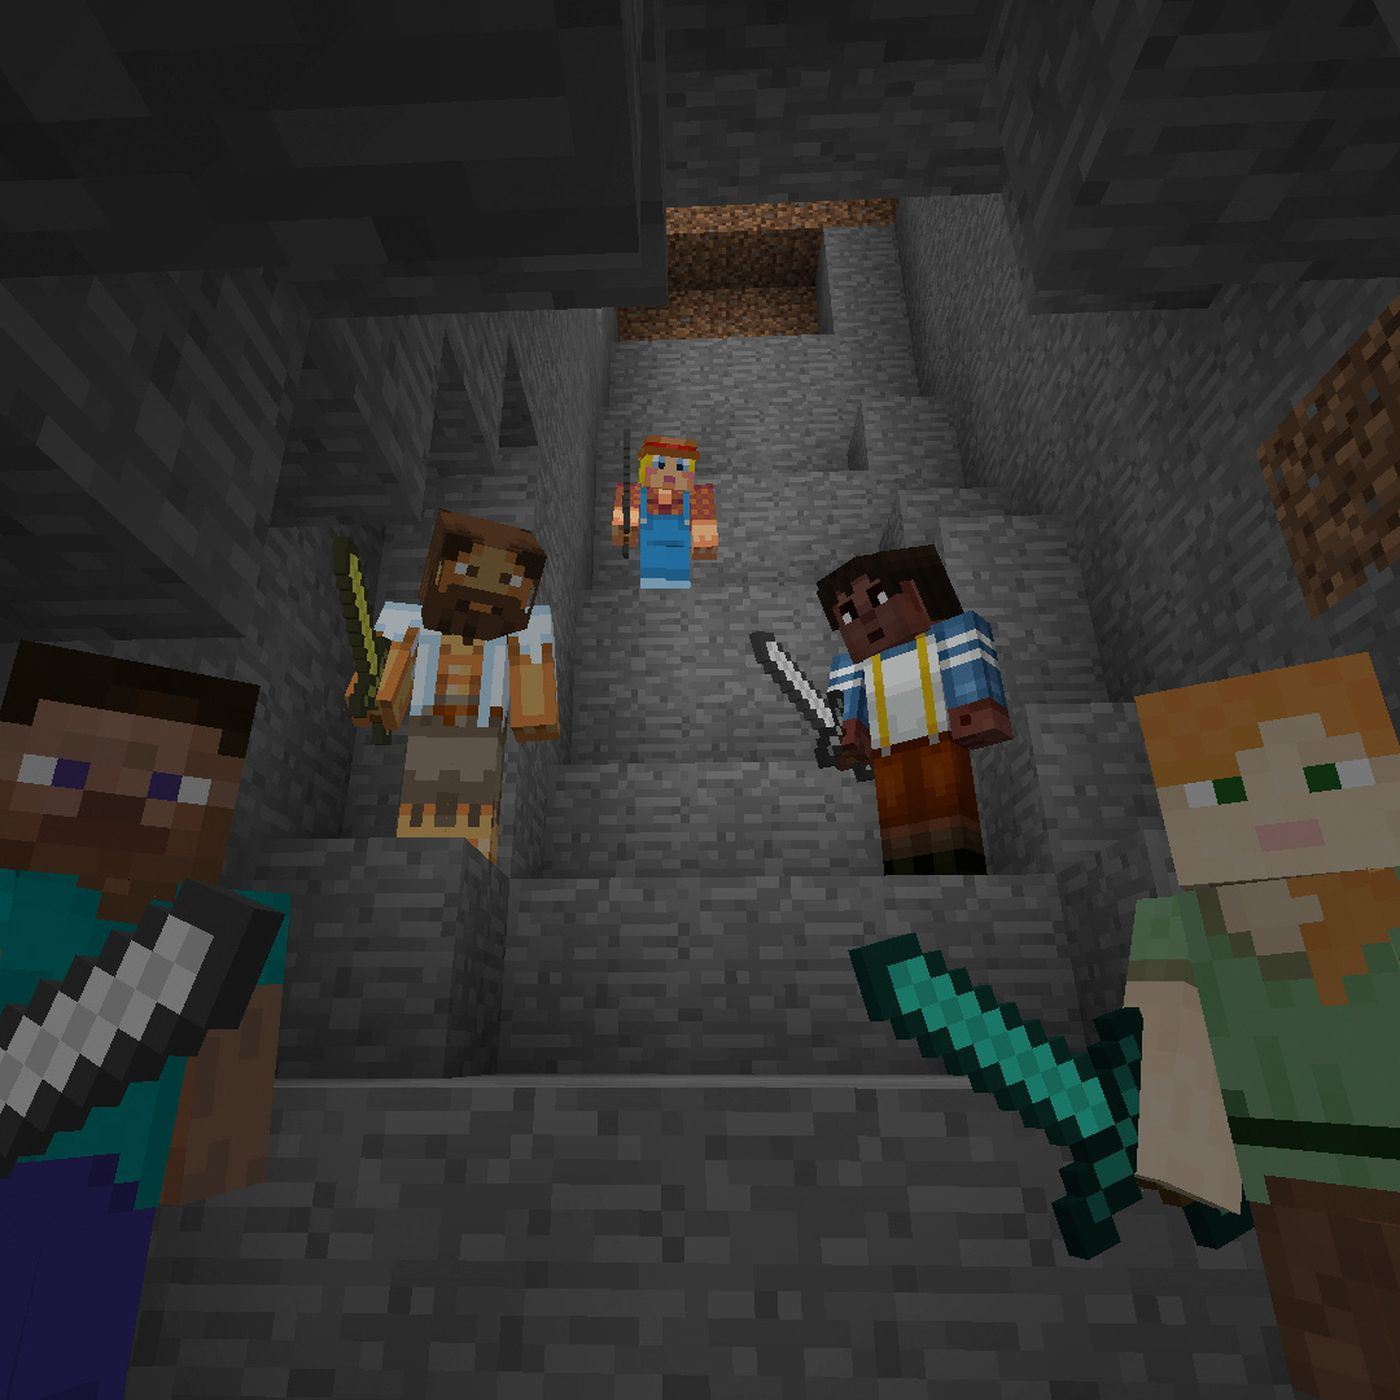 Minecraft now playable in VR with Oculus Rift - Polygon